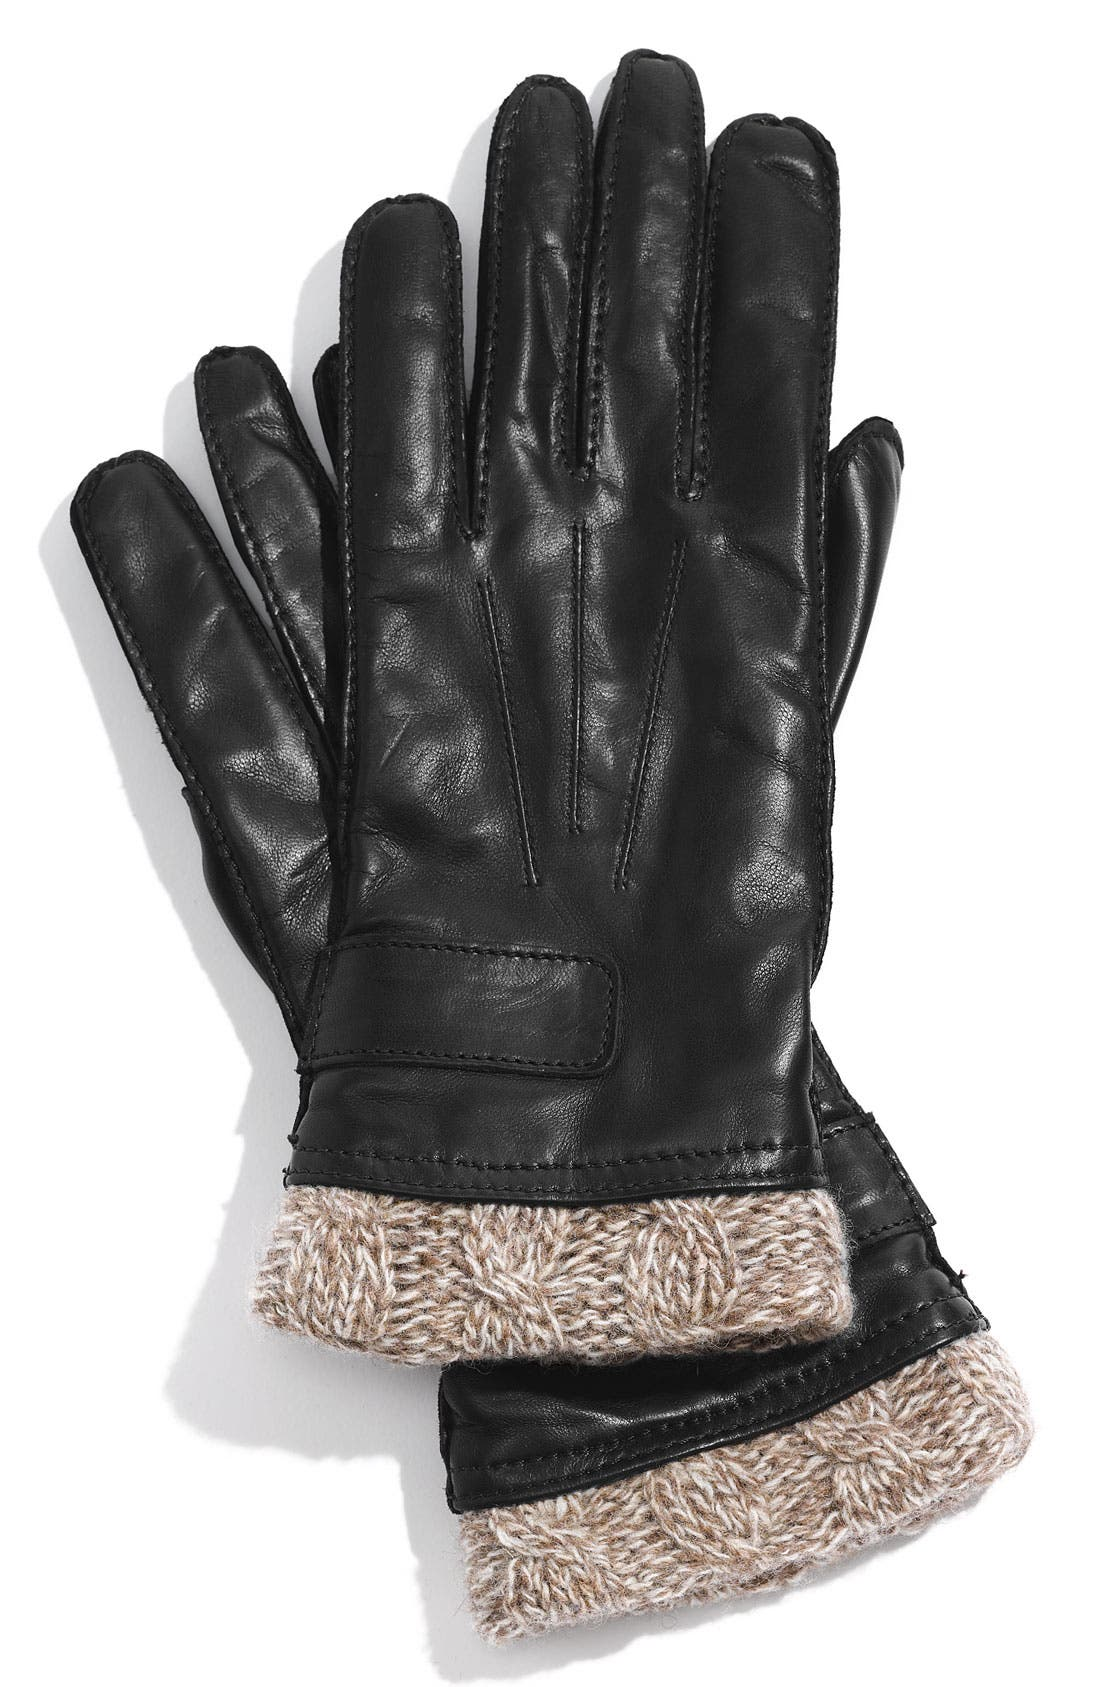 Main Image - Tarnish Knit Cuff Leather Gloves